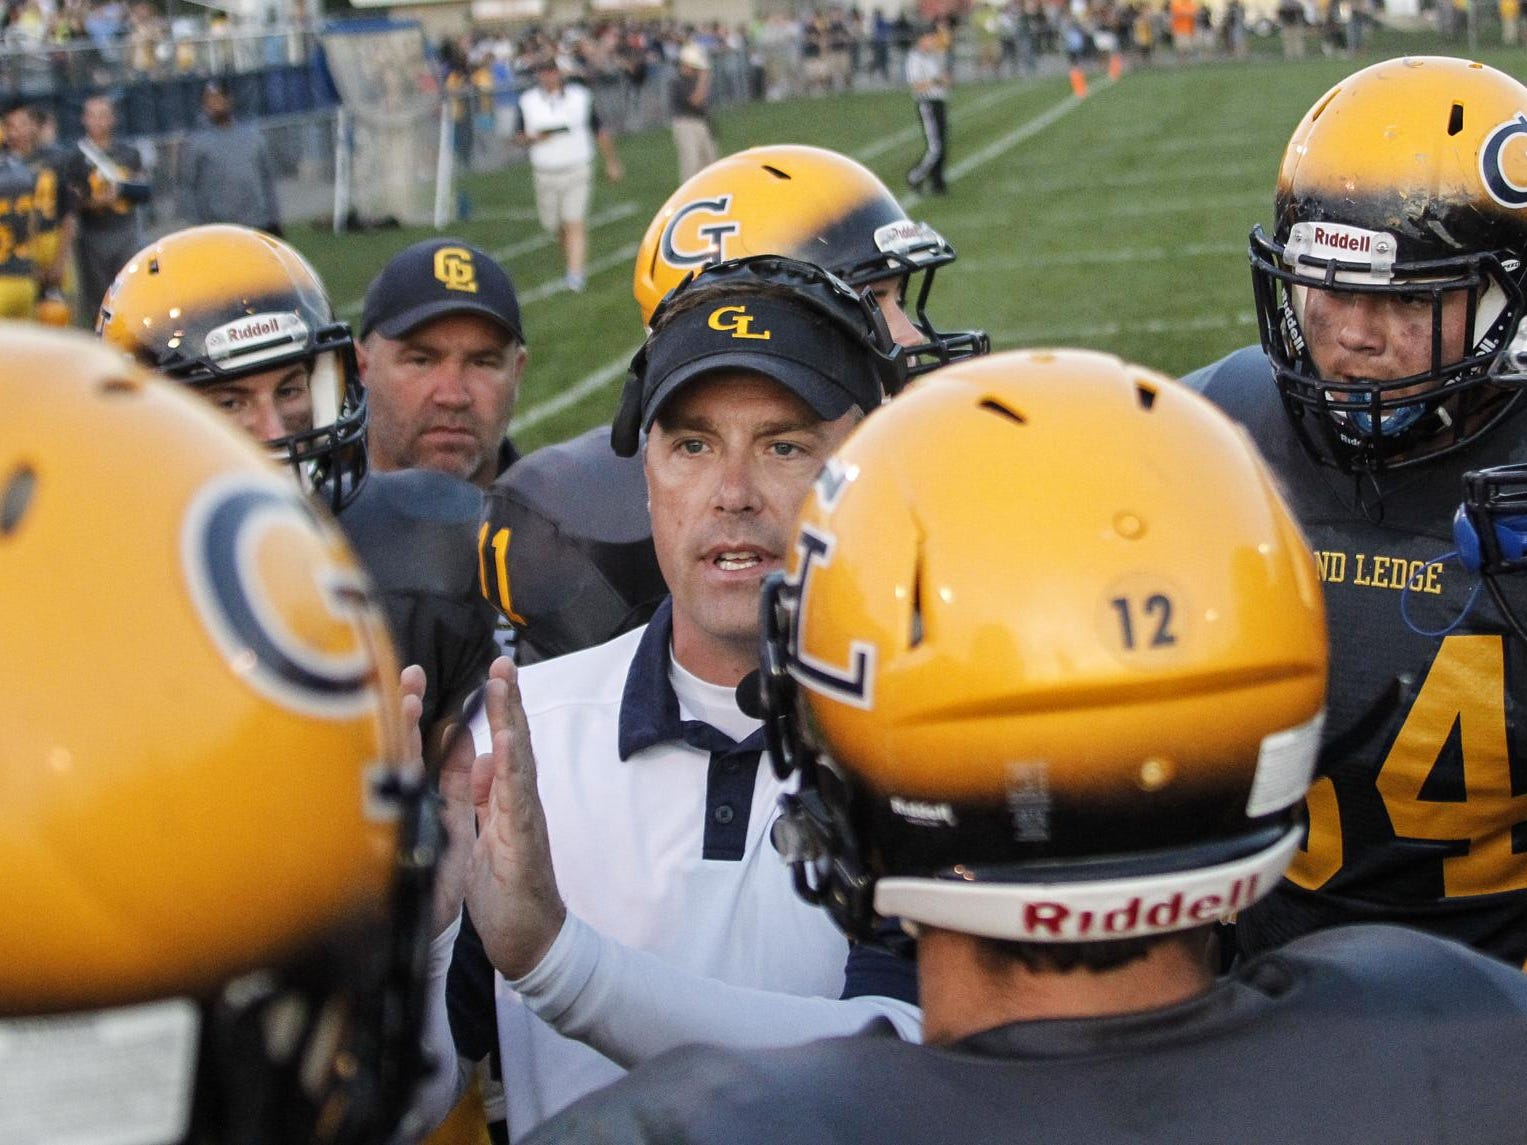 Coach Matt Bird and Grand Ledge are ranked No. 10 in Division 1 this week.